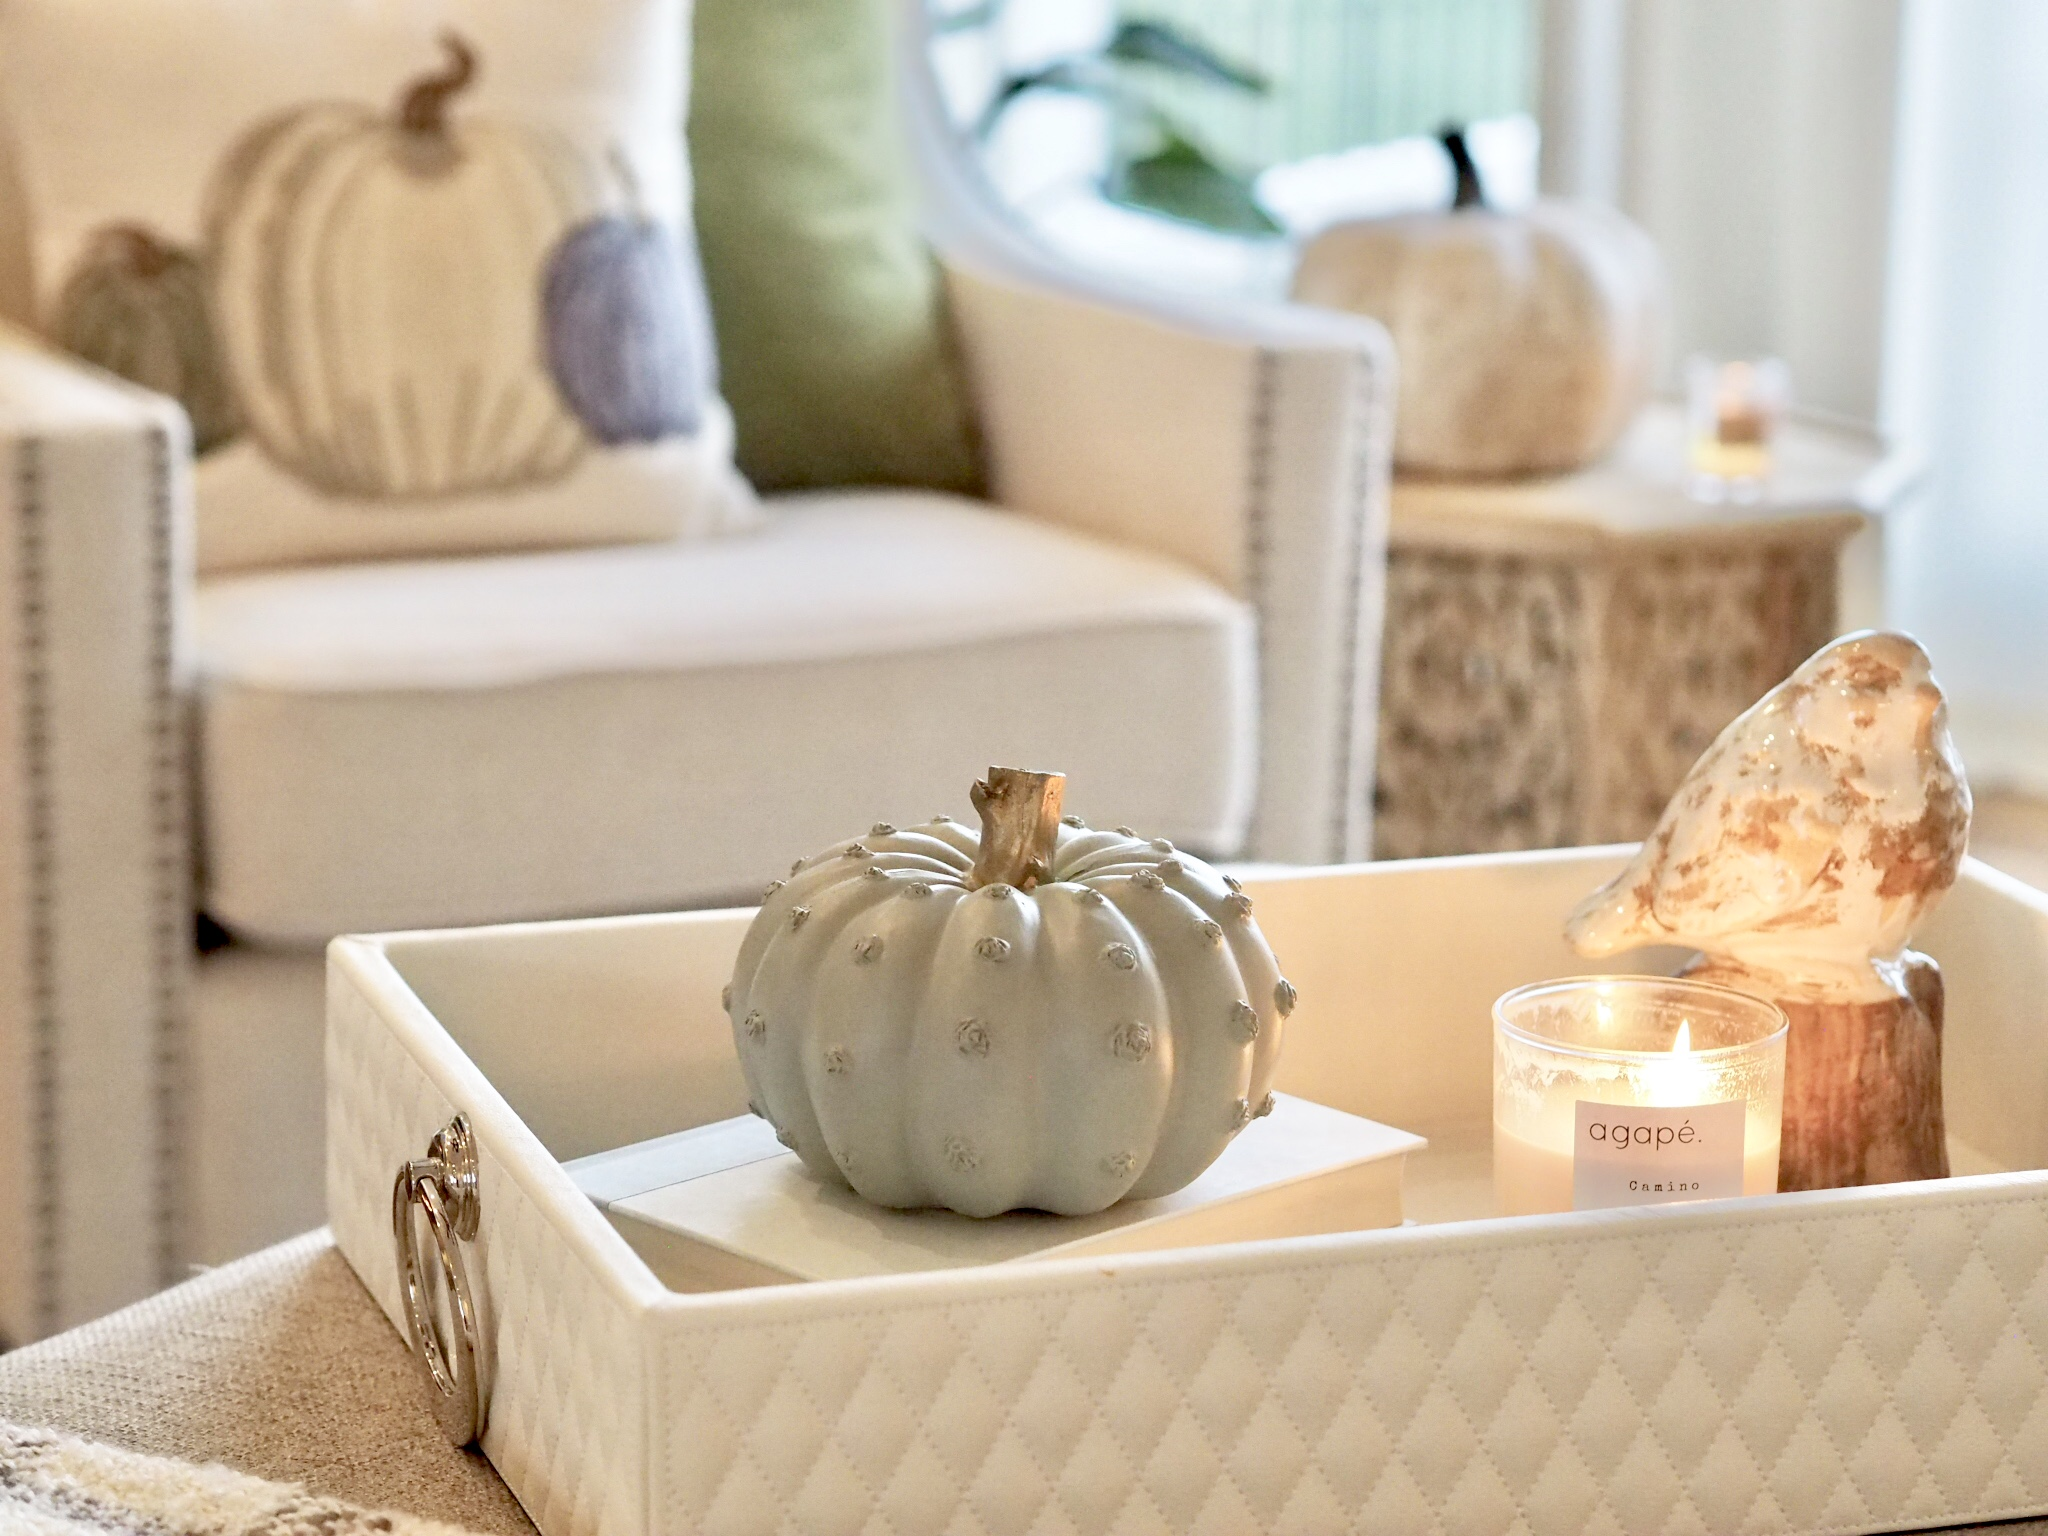 Agape Candle in Camino smells exactly like fall! Visit @agapecandles on Instagram! This tray was found at Home Goods last winter. The cute bird on a perch is from Hobby Lobby.